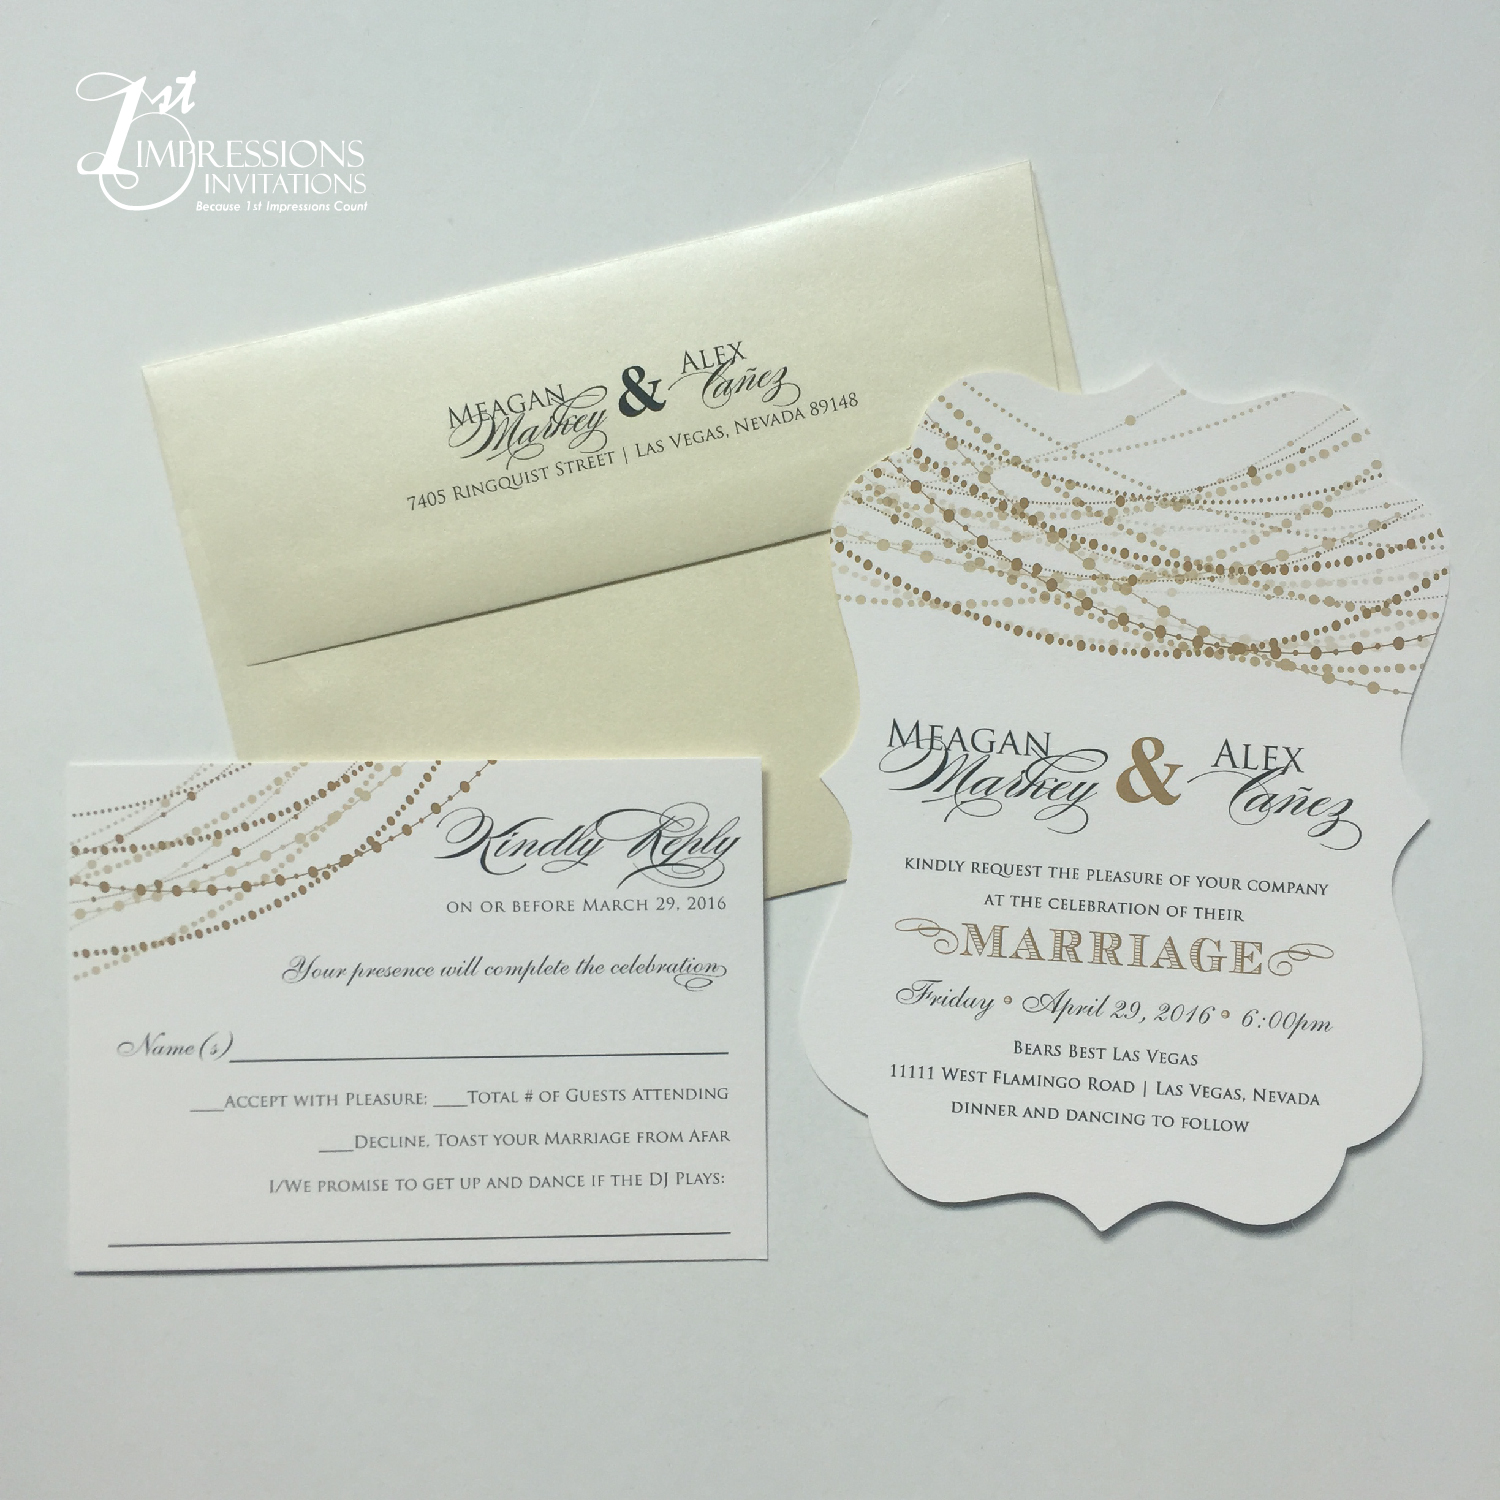 1st Impressions Invitations: Ornat Shaped Wedding Invitations with ...